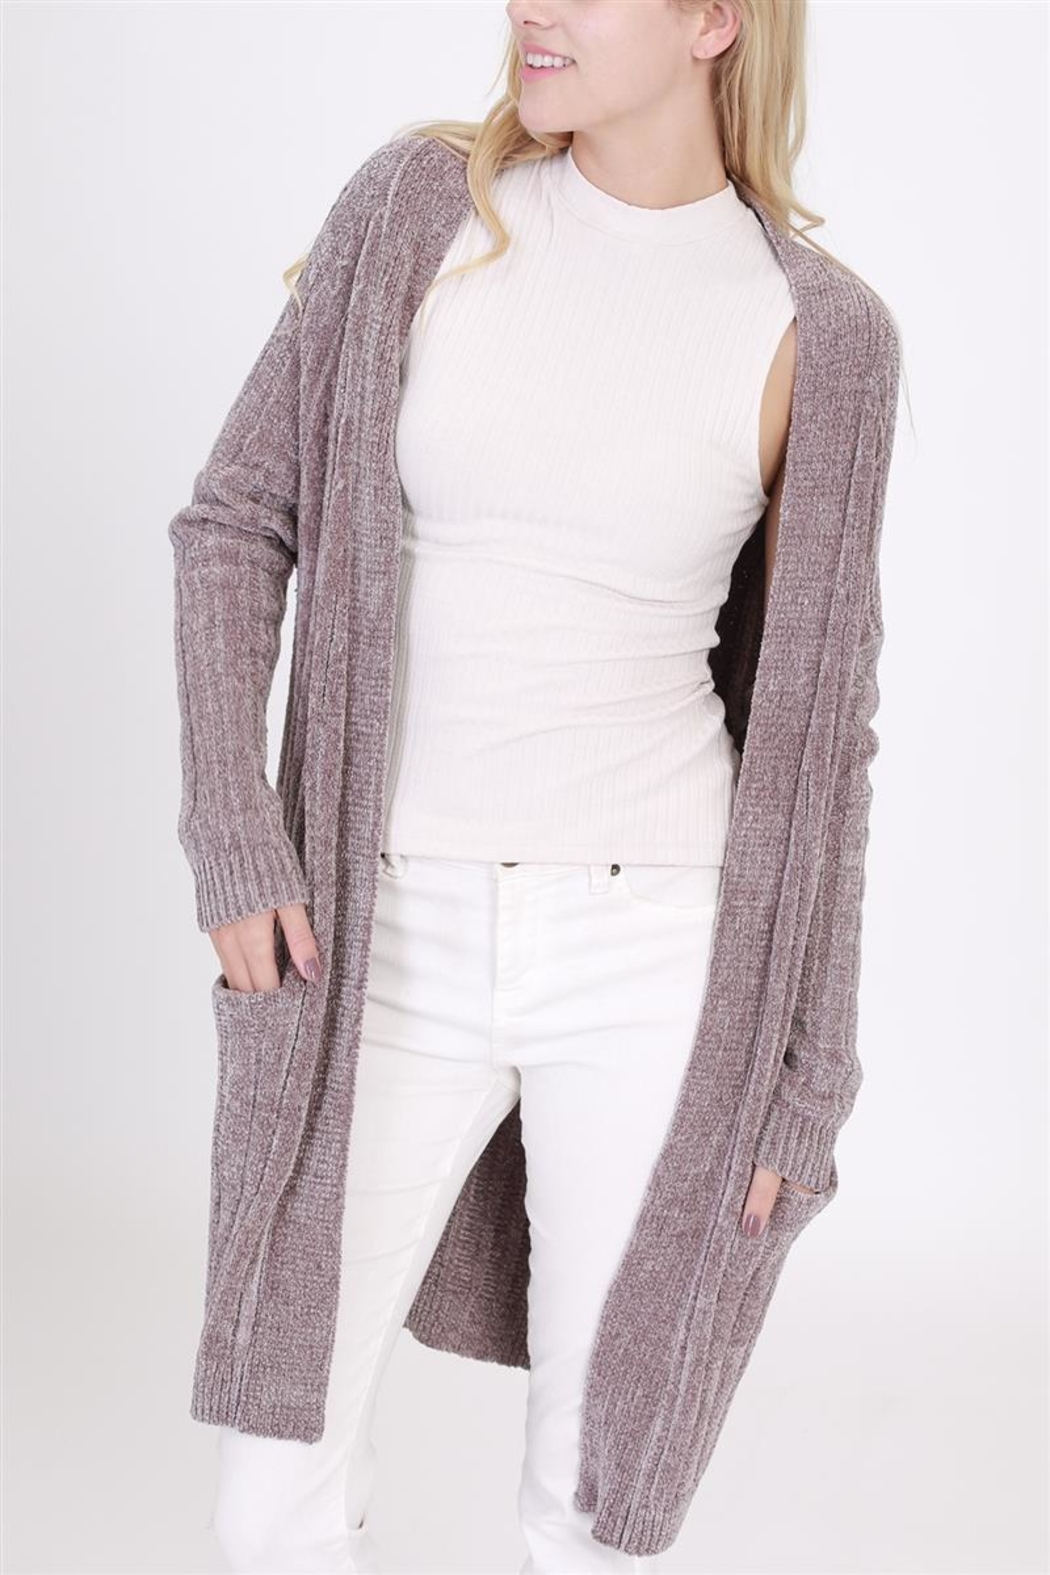 HYFVE Soft Cardigan Sweater - Front Cropped Image